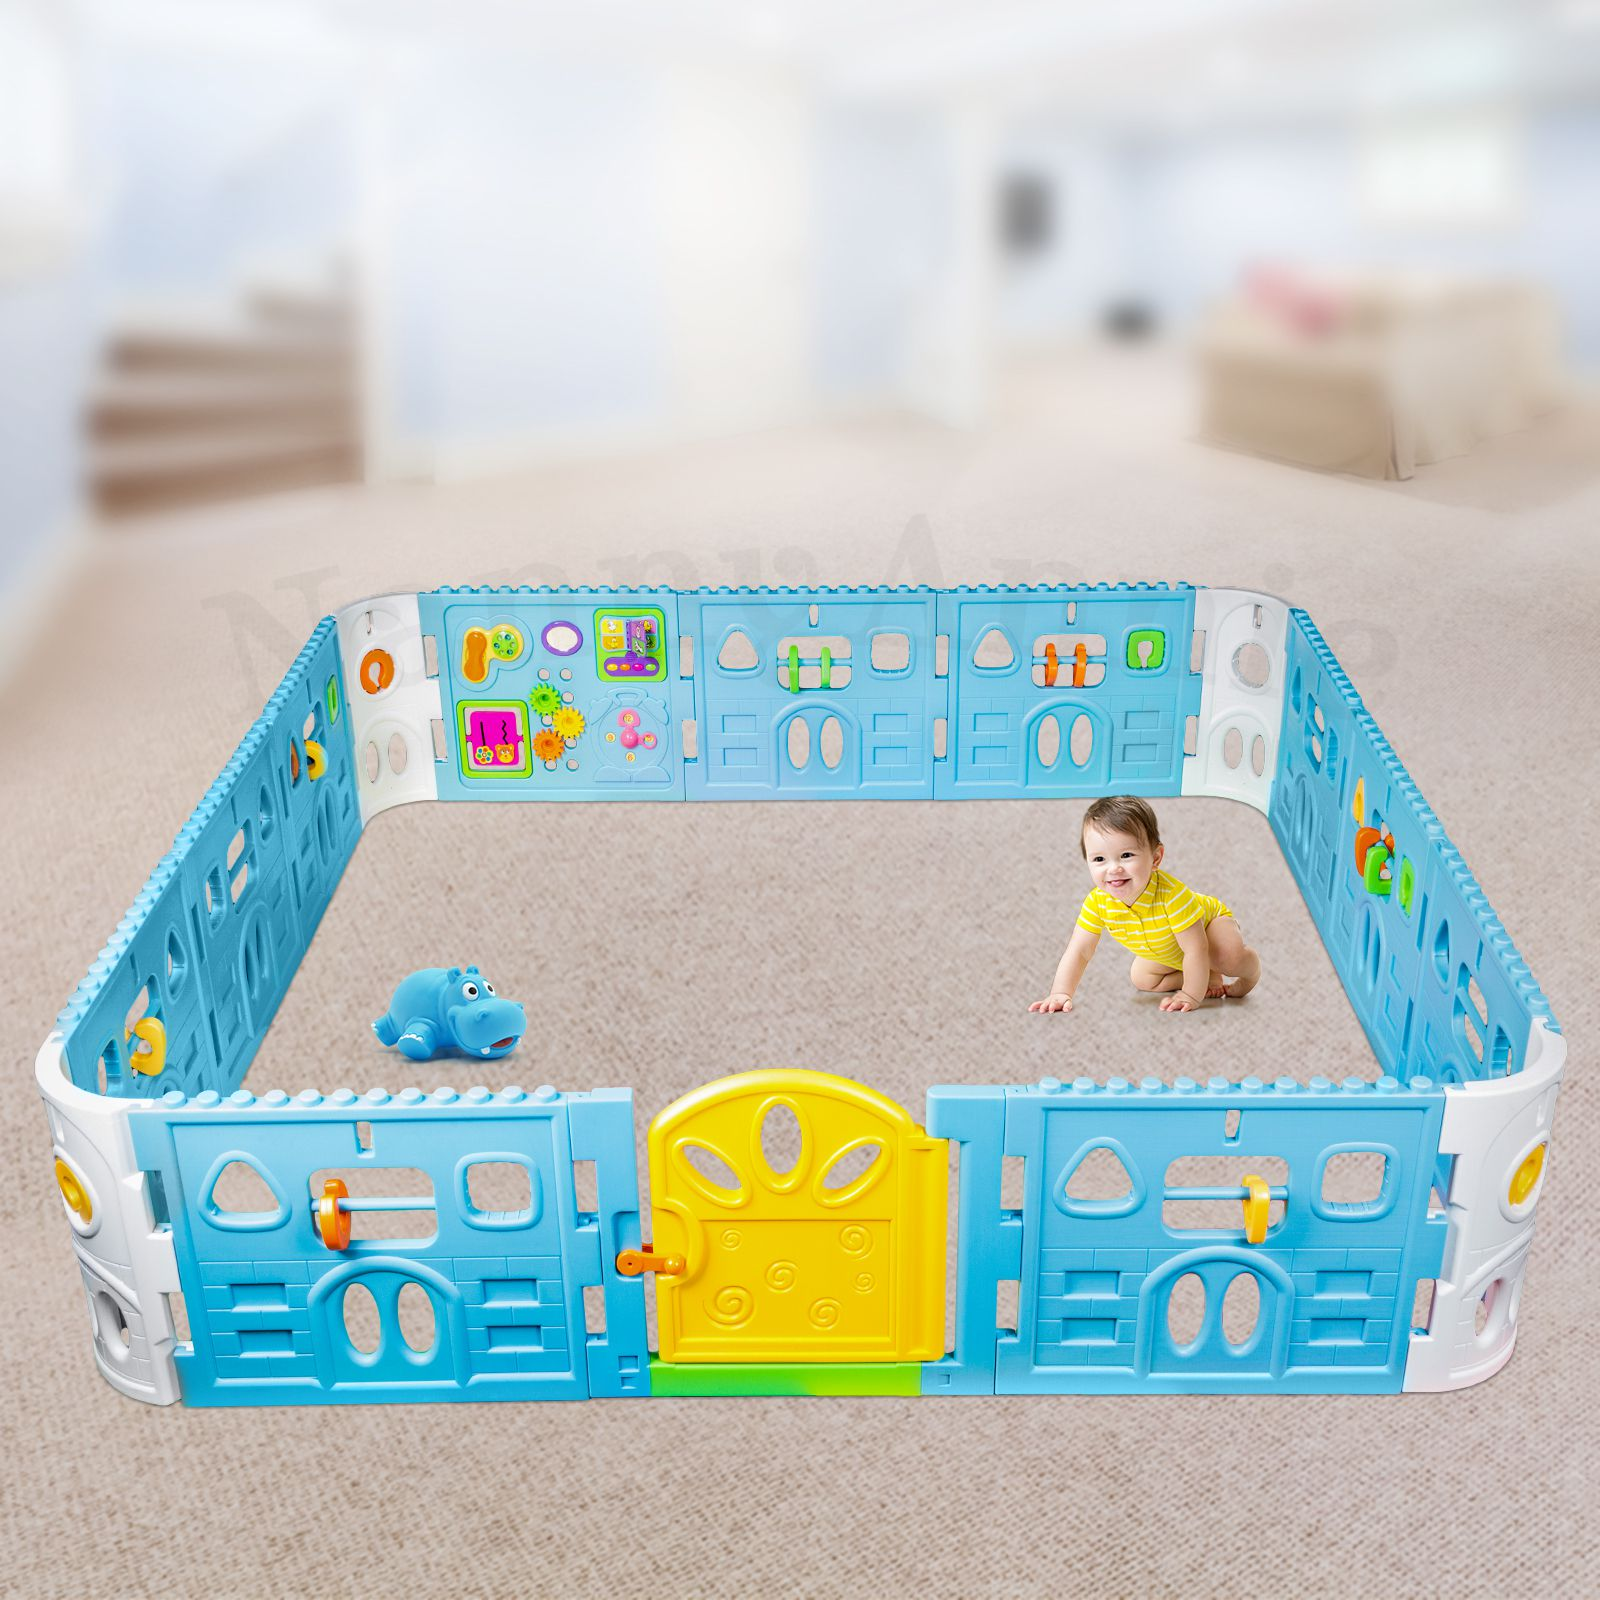 Baby Playpen With Door - Super Giant Interactive Play Room 2.3 x 2.3m - Nanny Annie & Baby Playpen With Door - Super Giant Interactive Play Room 2.3 x 2.3 ...